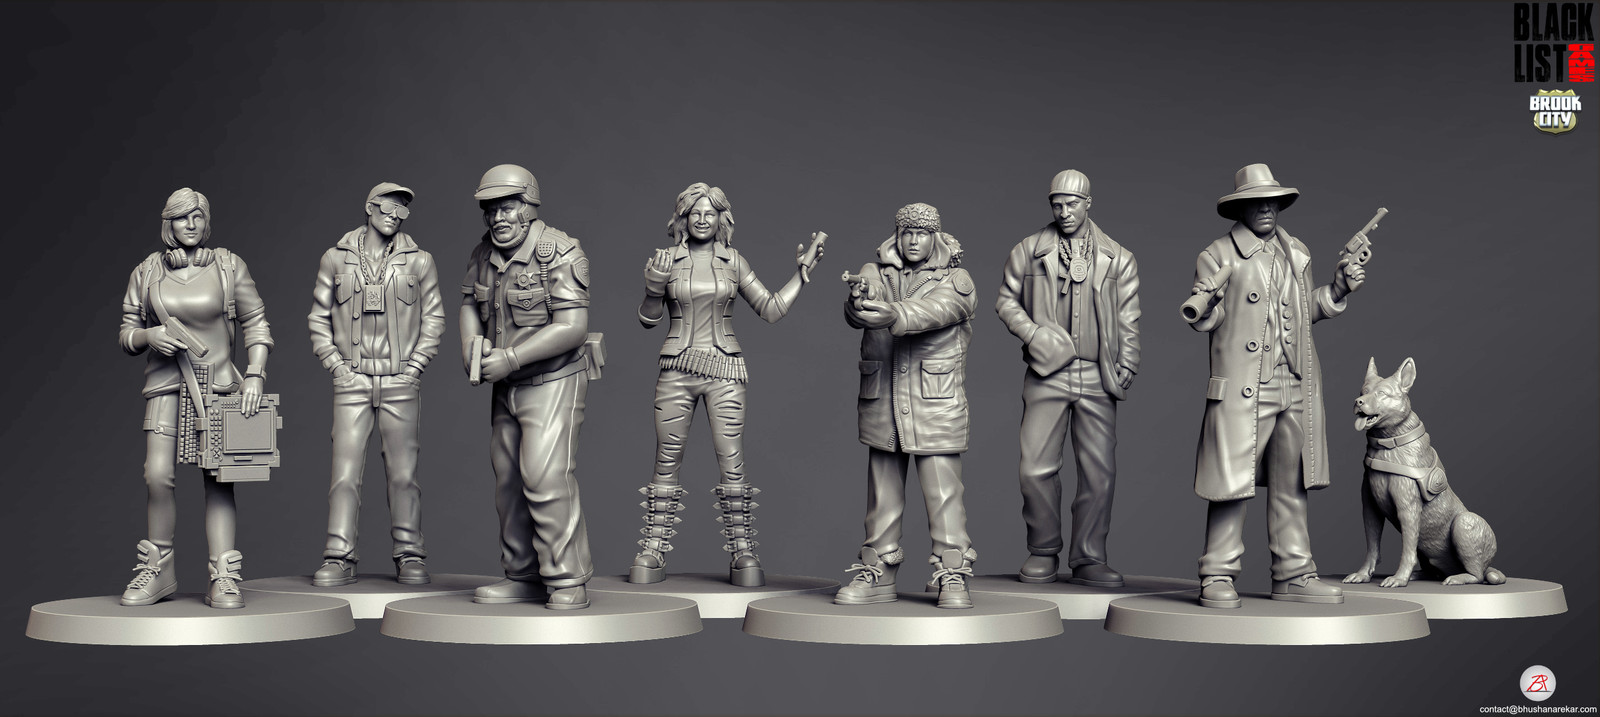 Blacklist Games_Brook City_Miniatures